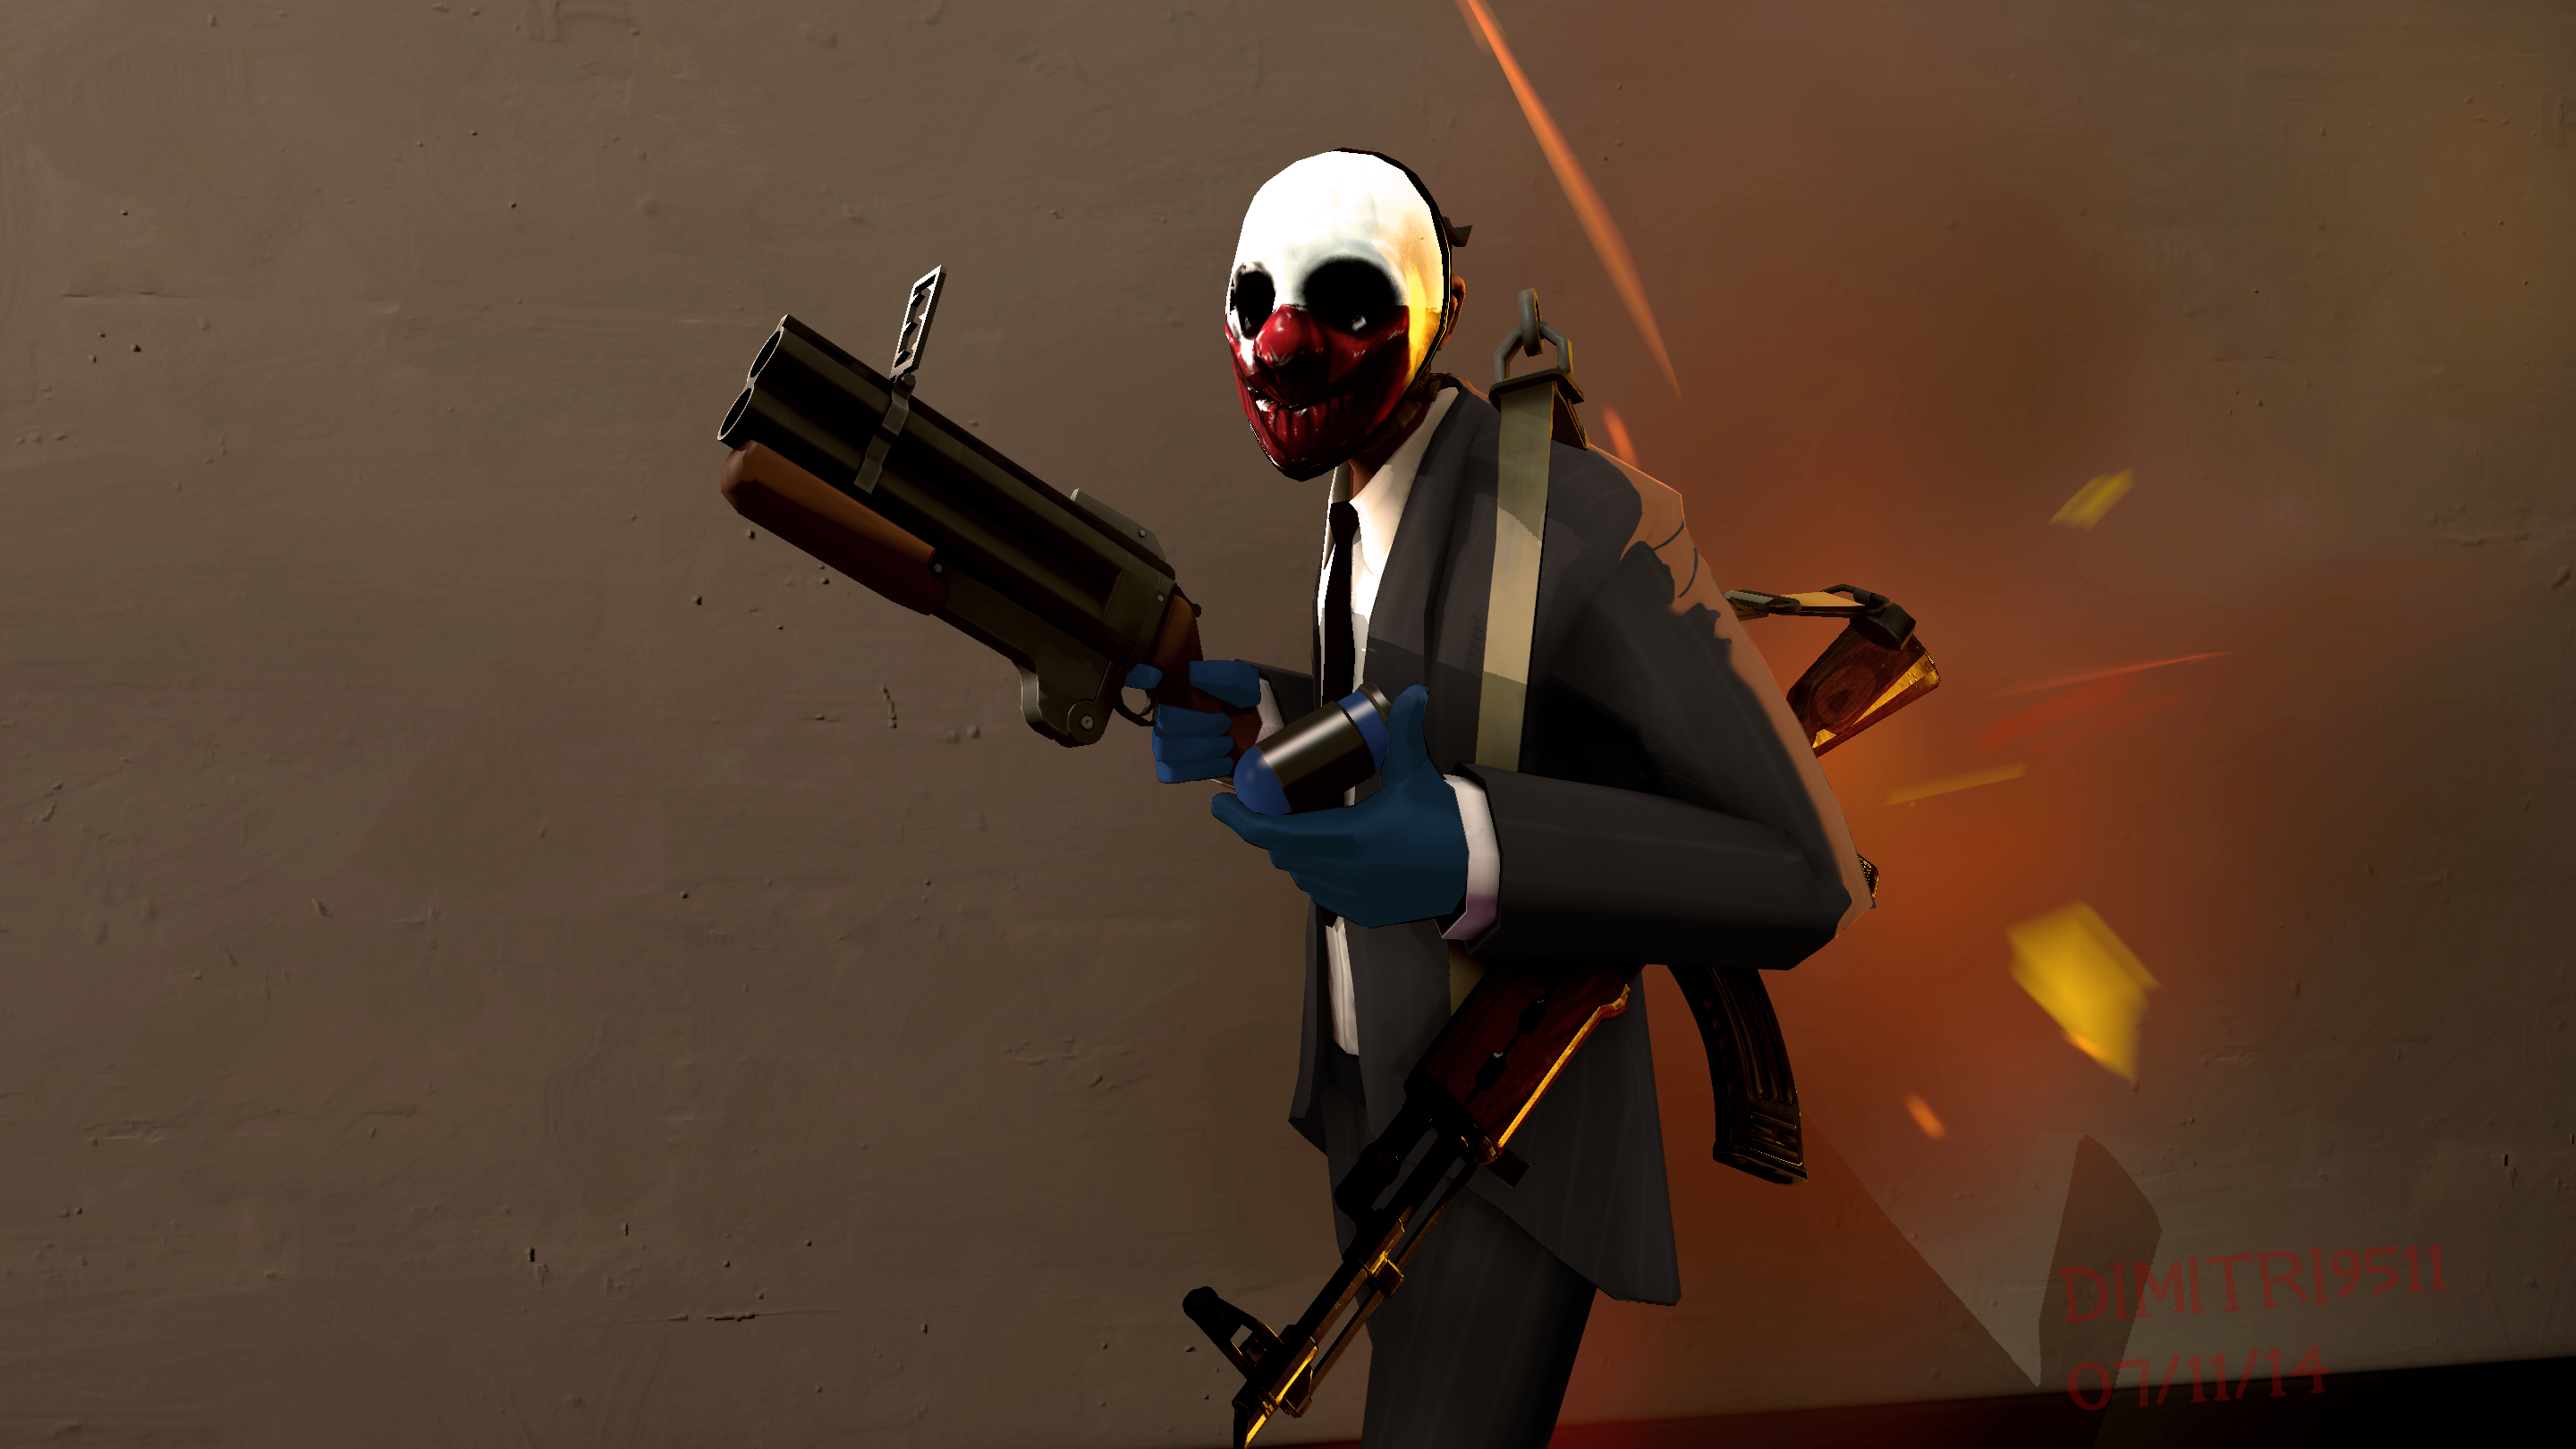 Wolf From Payday The Heist 2 By Dimitri9511